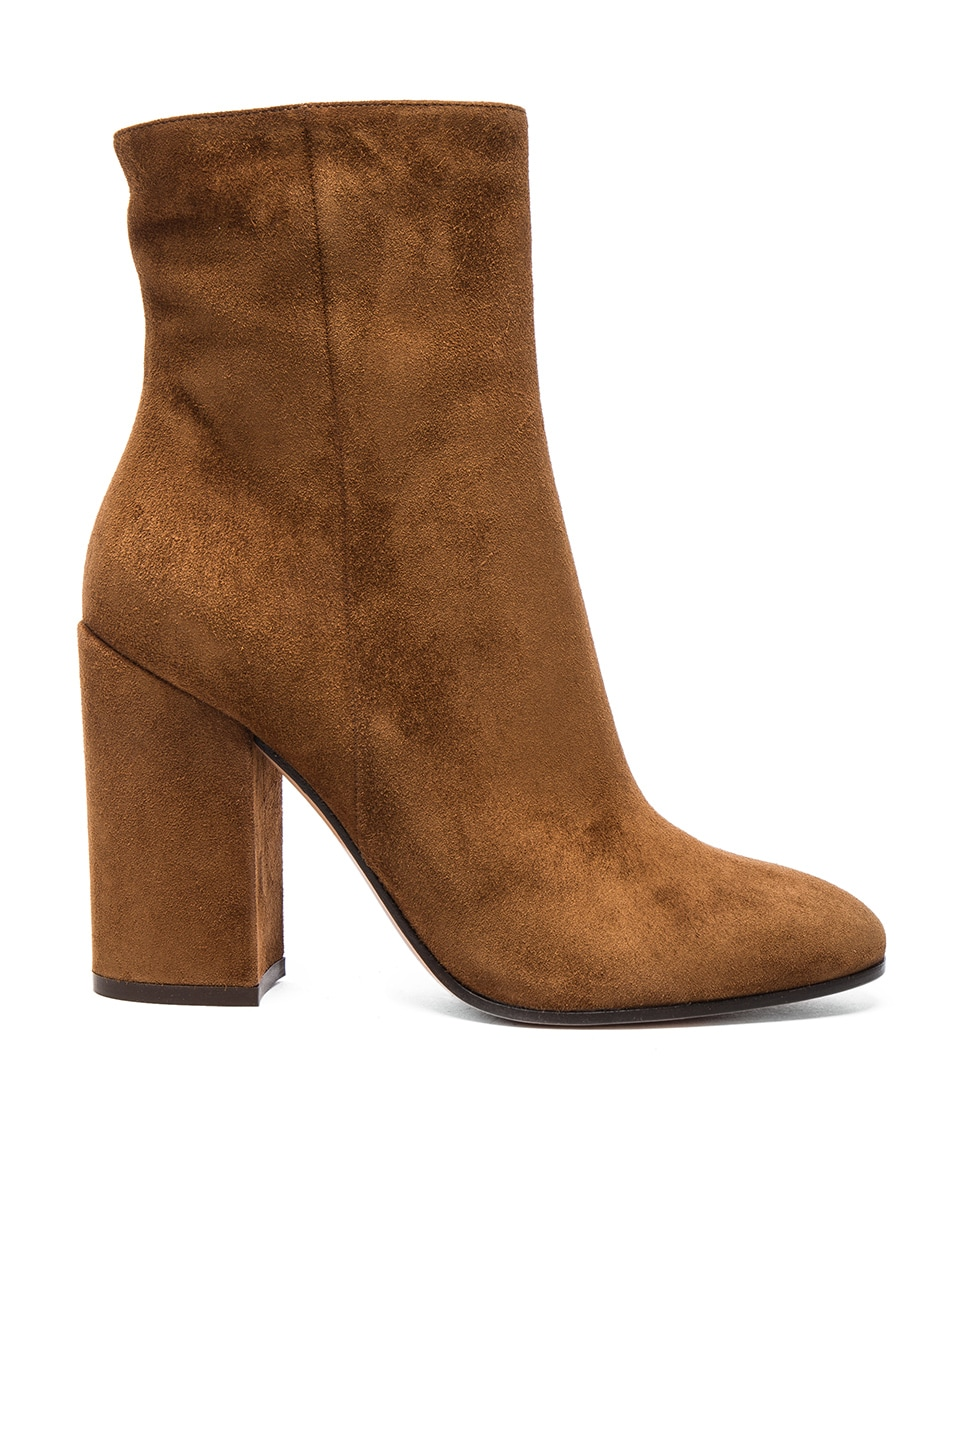 Image 1 of Gianvito Rossi Suede Rolling High Booties in Texas